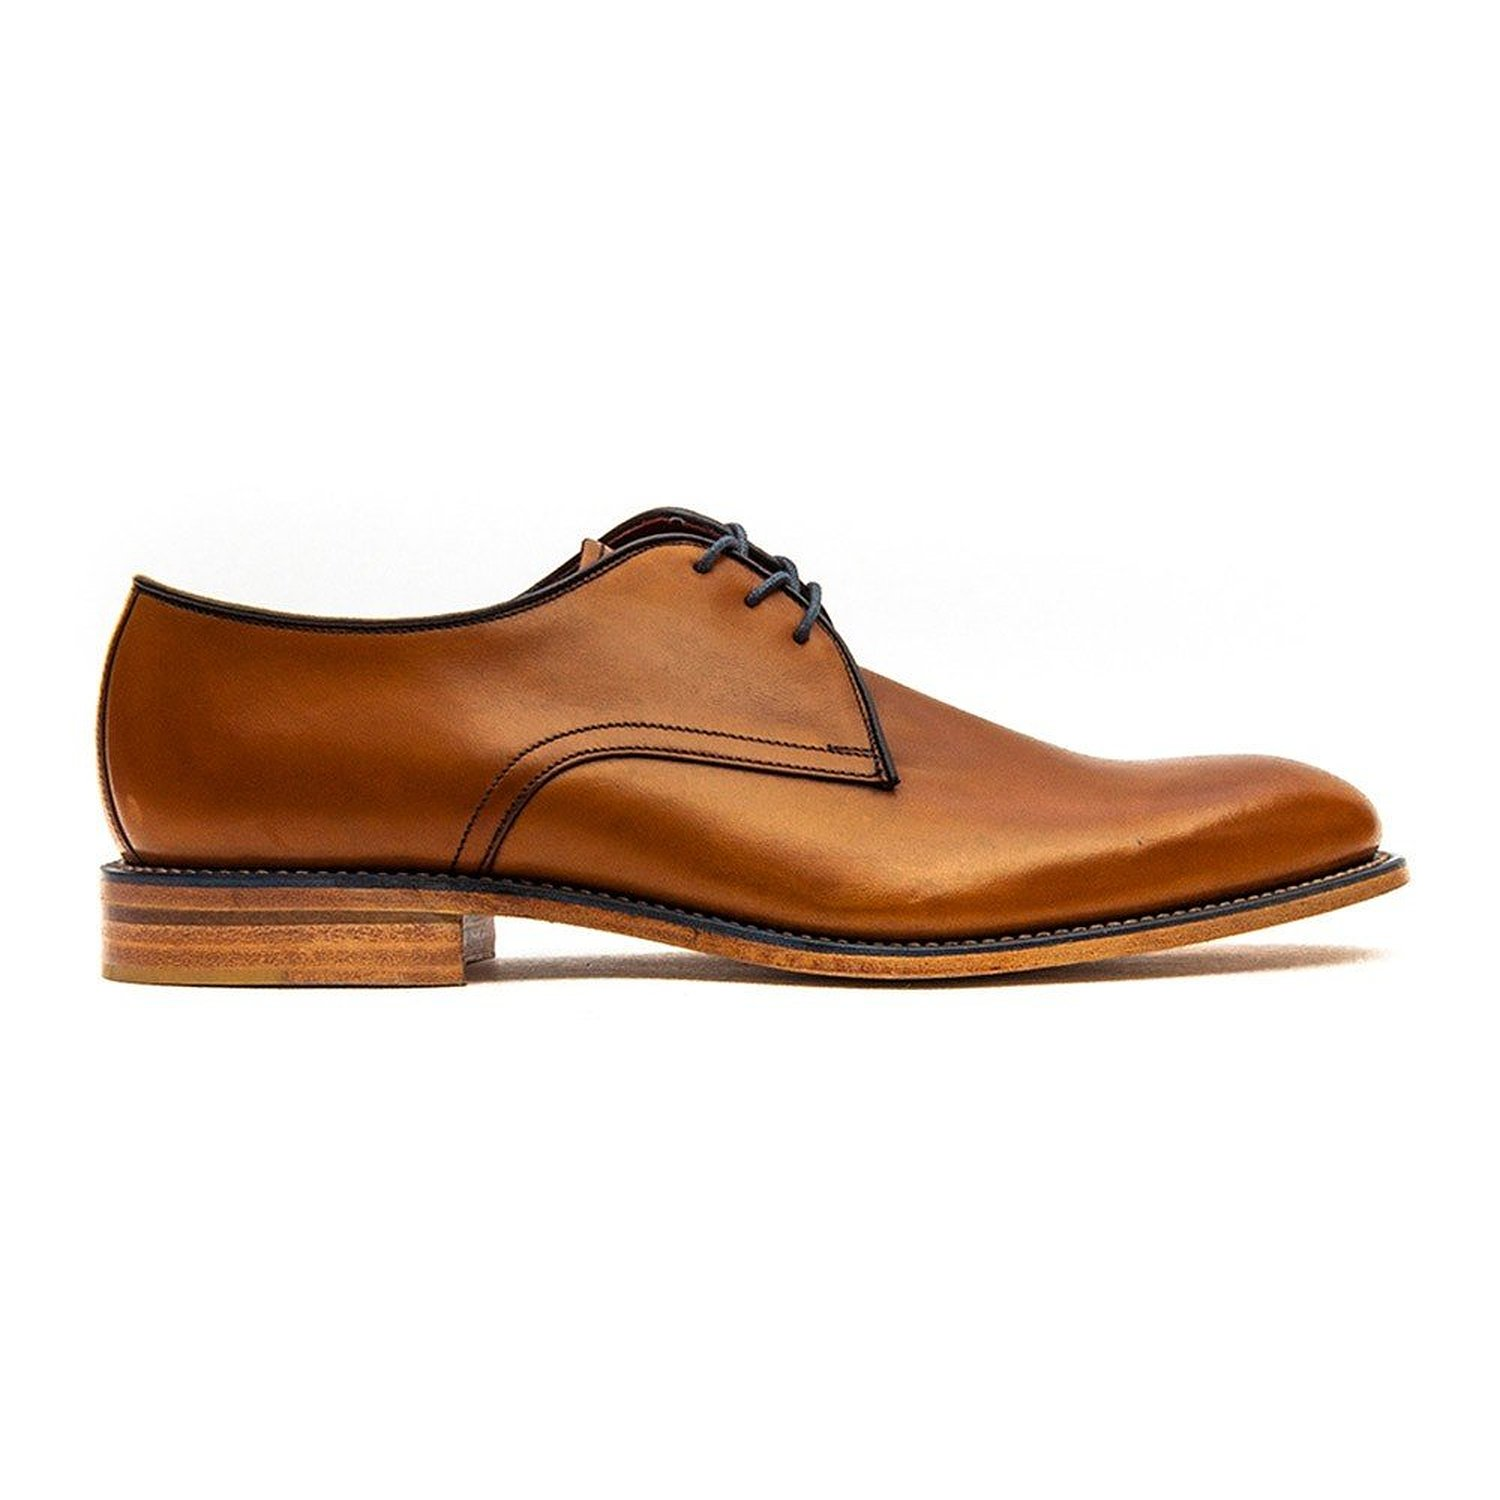 Loake Tan Leather Derby Shoes Uk